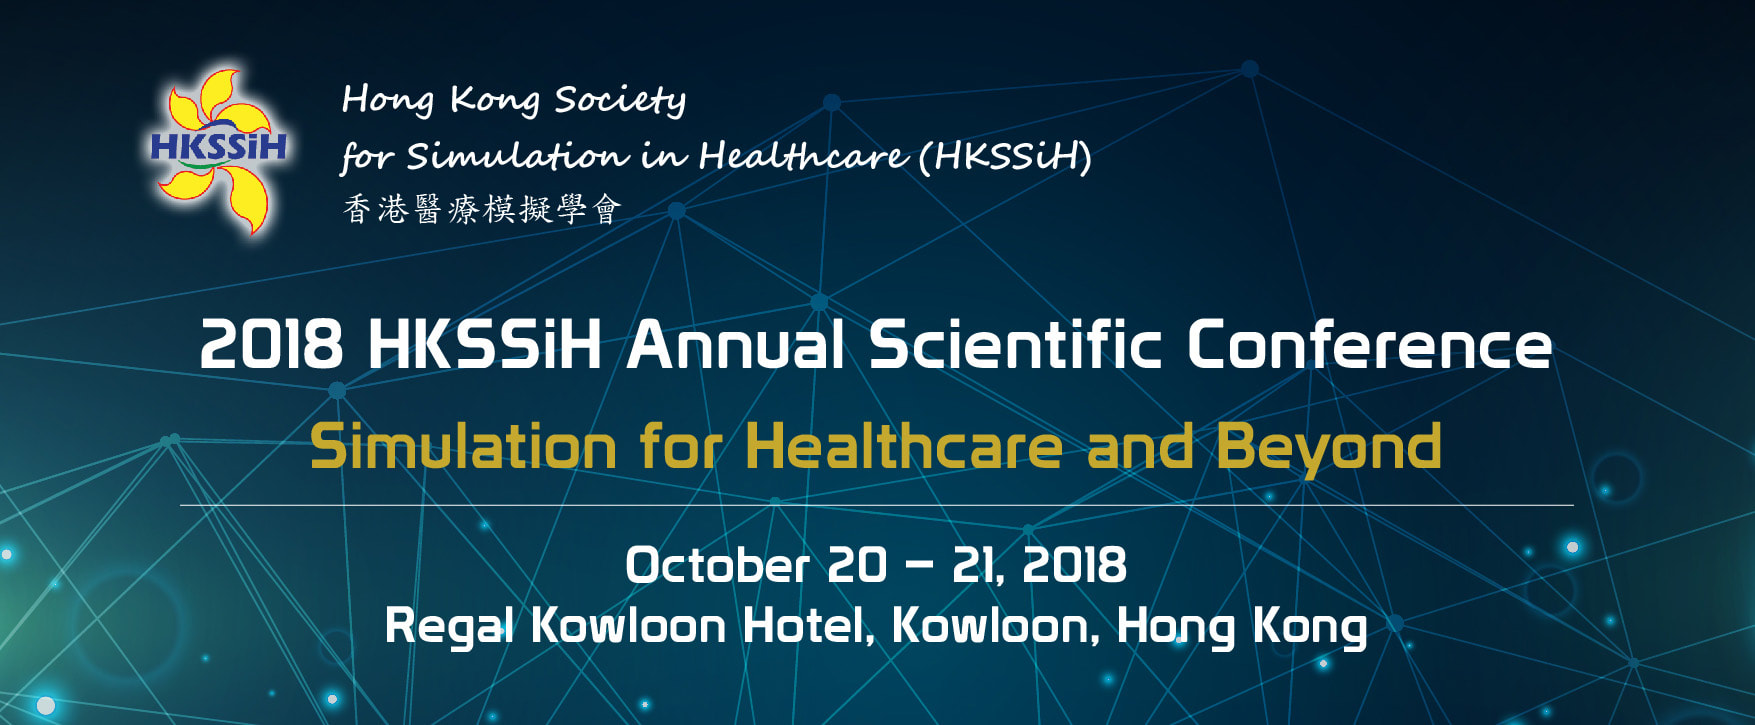 Hong Kong Society for Simulation in Healthcare - Home